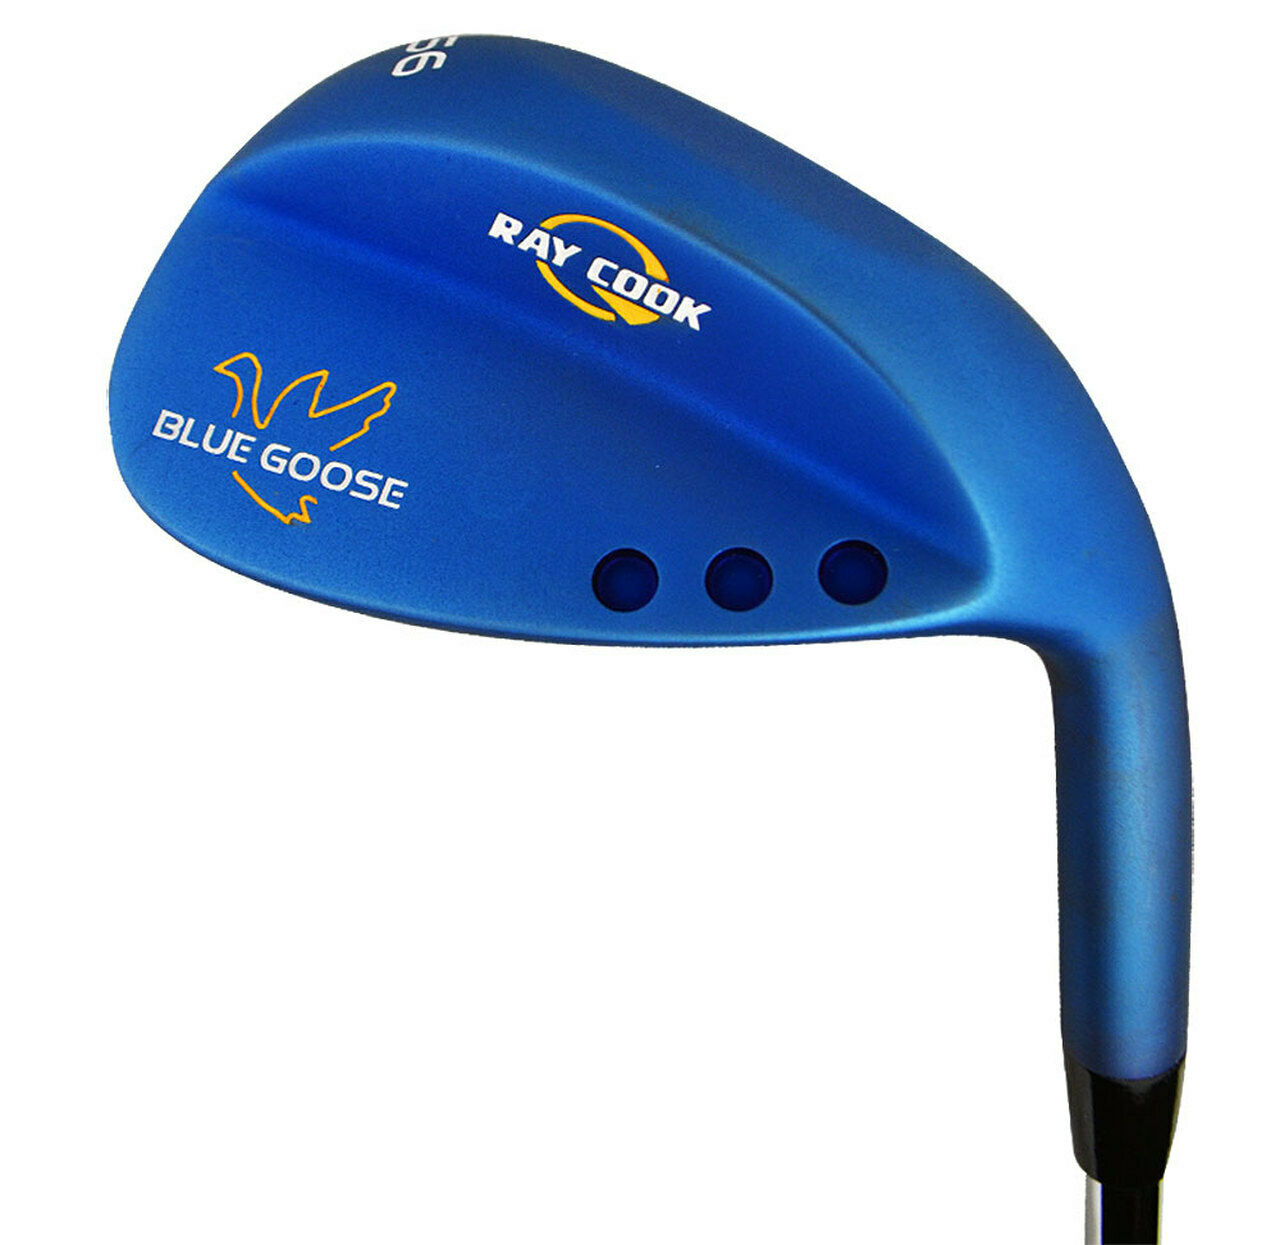 Ray Cook Golf Blue Goose Sand or Lob Wedge Cobalt Blue Mens Golf Club 56* or 60*